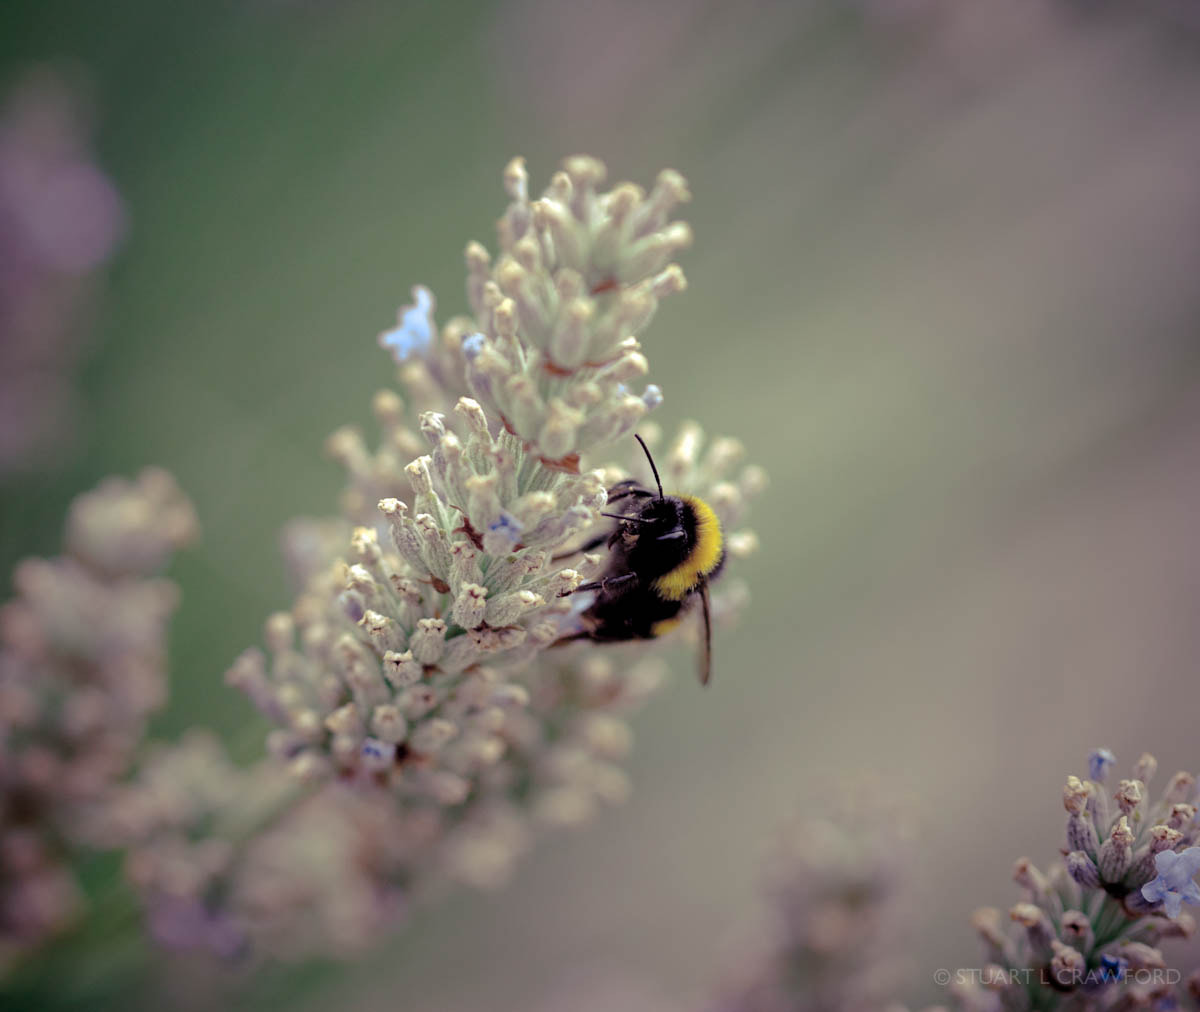 Photograph Bee by Stuart Crawford on 500px